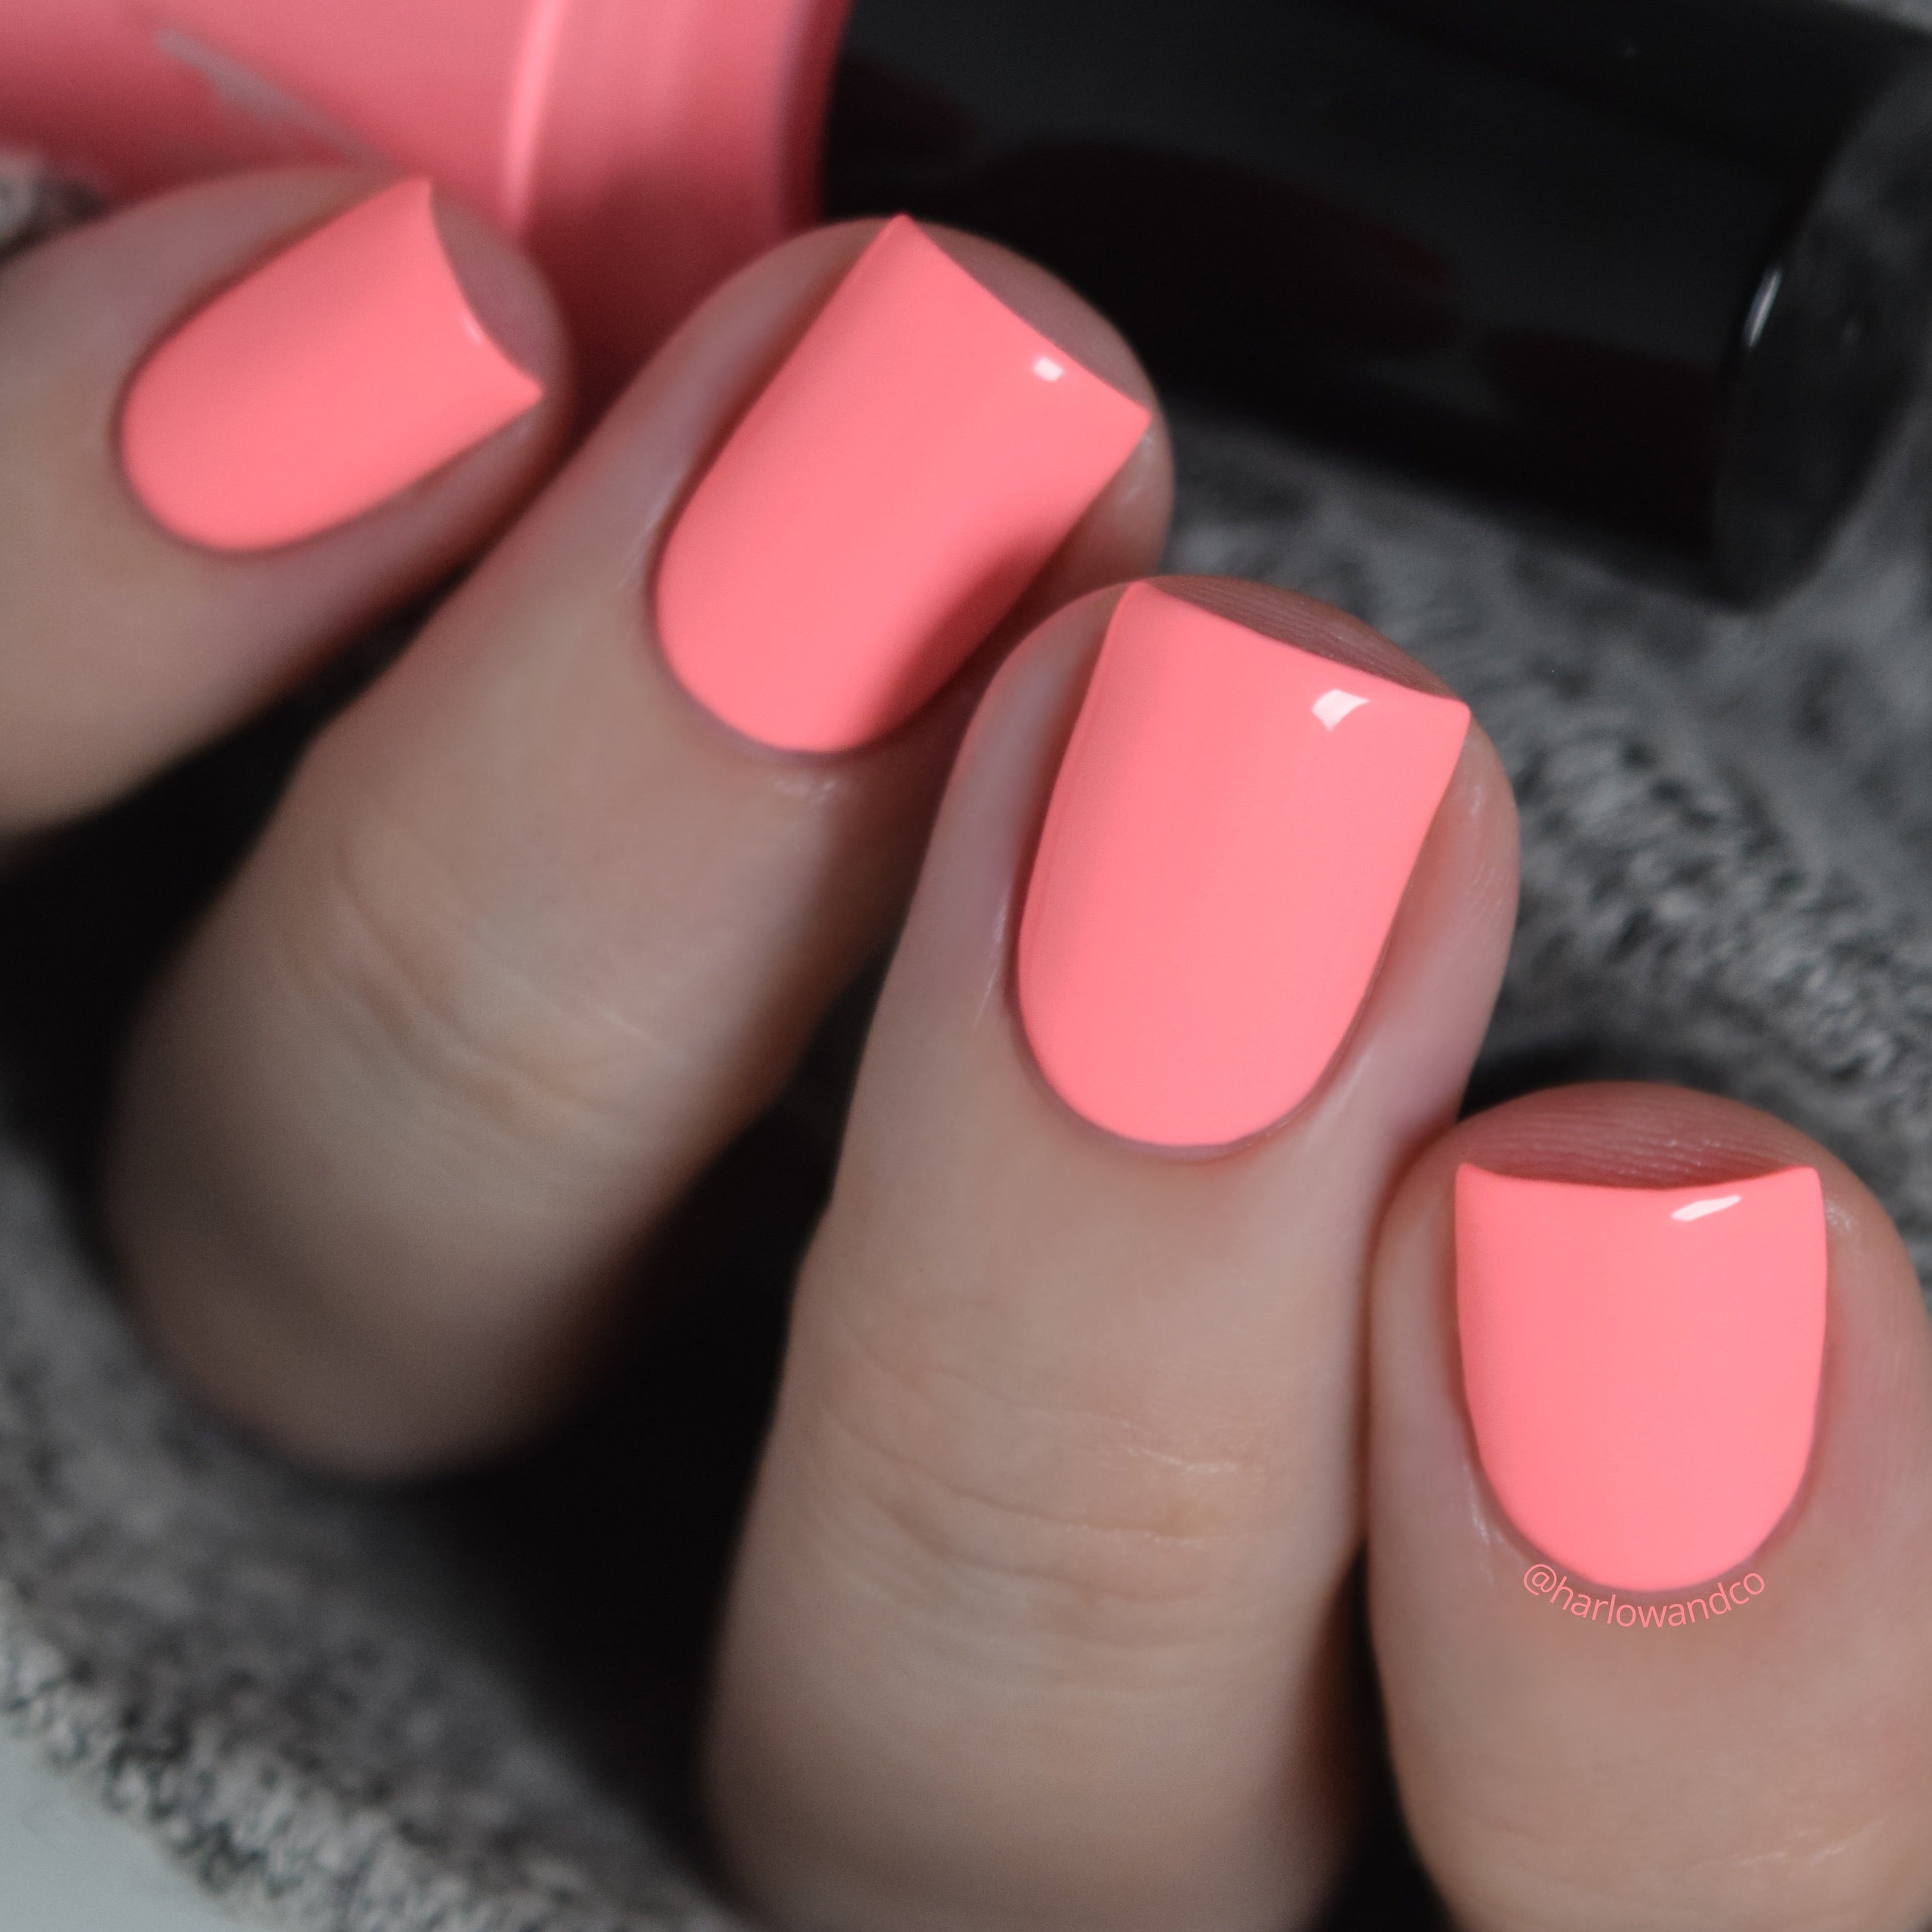 KBShimmer Guava Nice Day faded neon coral creme nail polish Seas the Day Collection